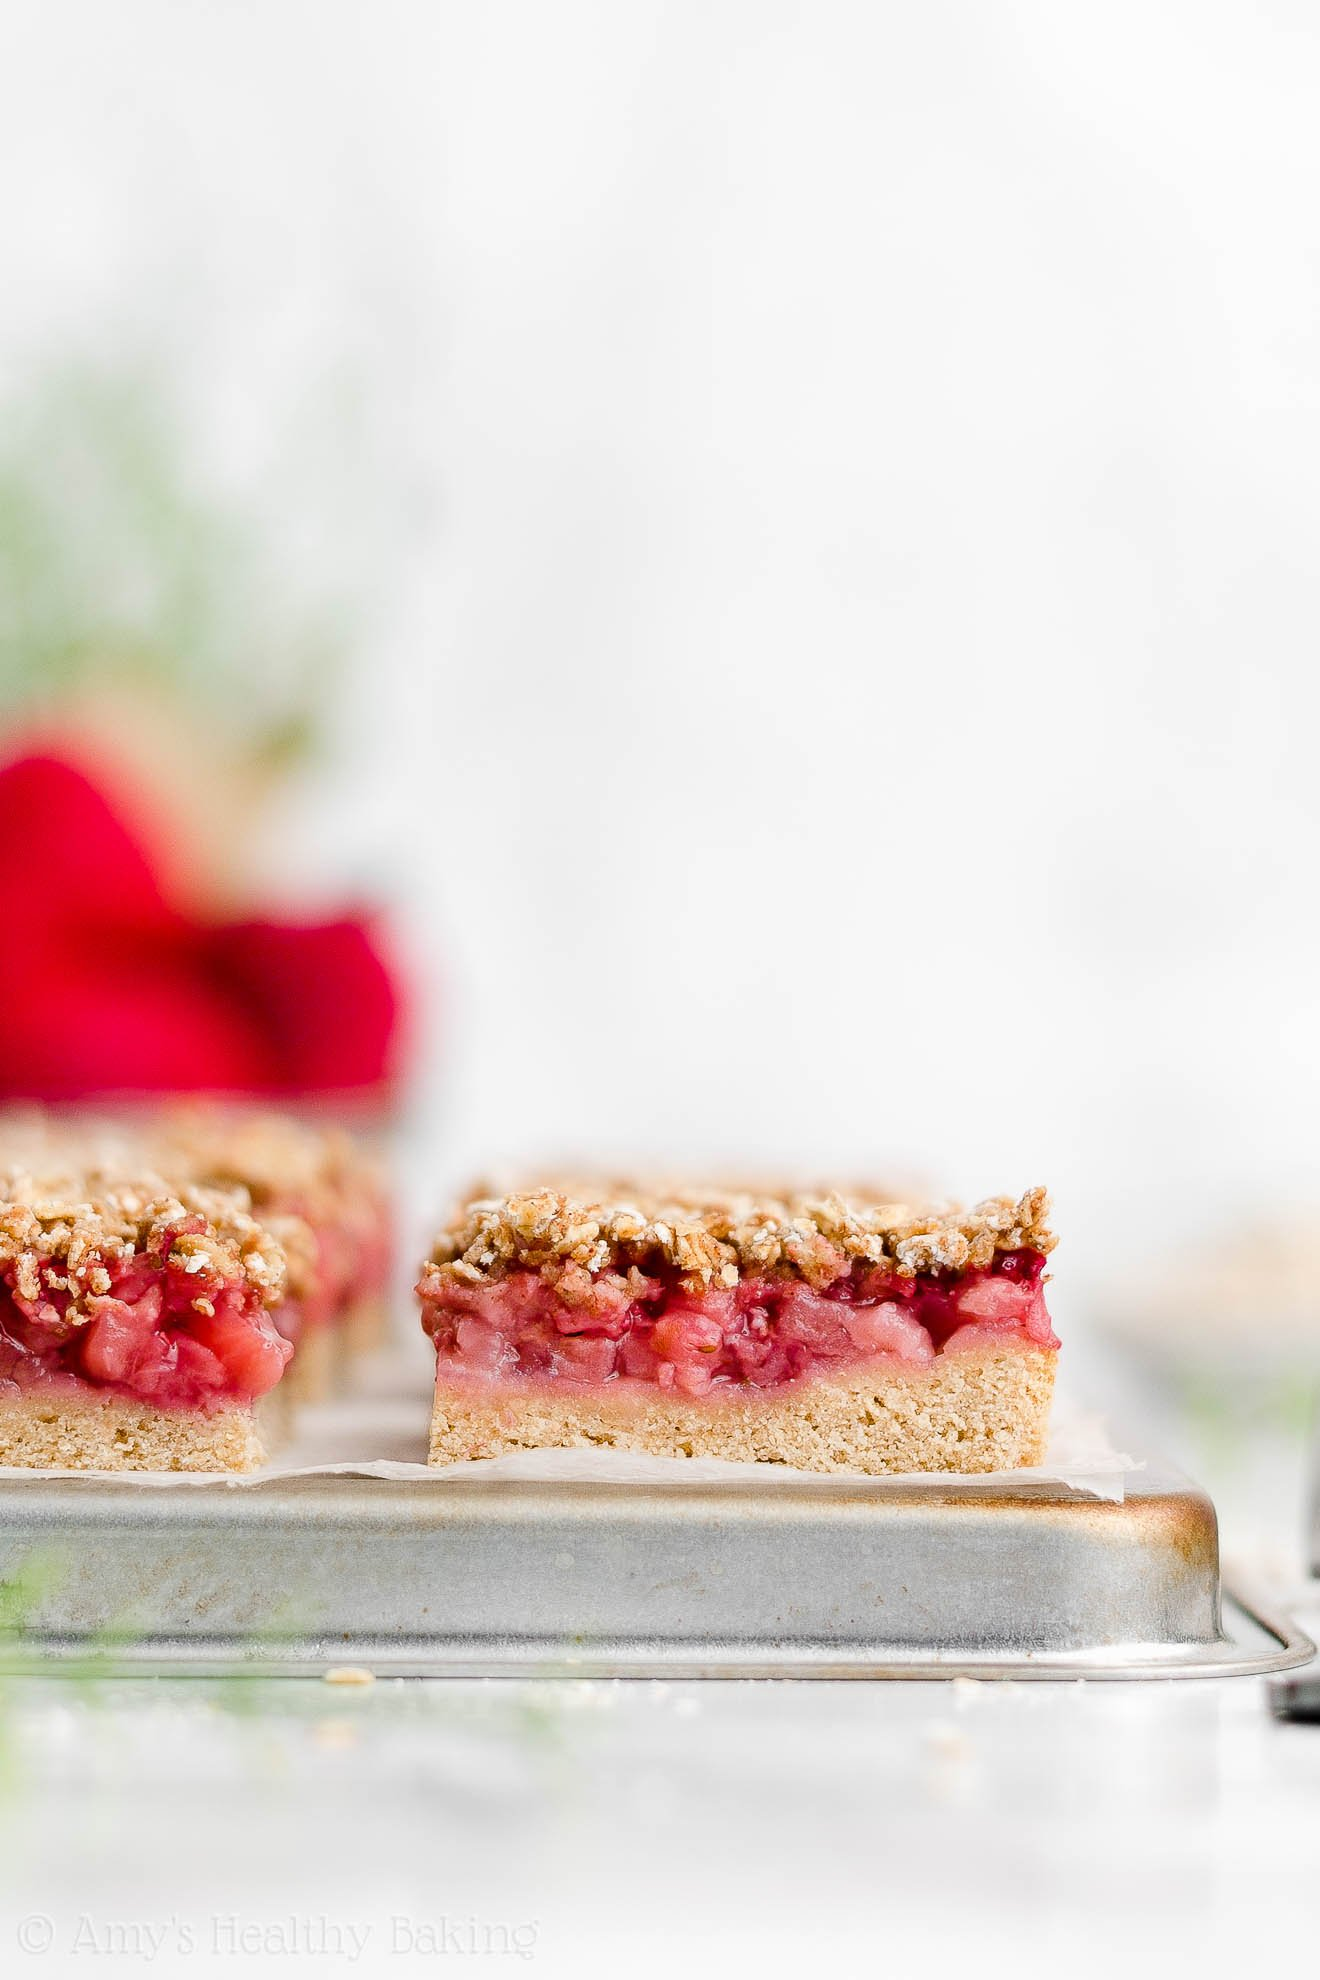 Best Easy Healthy Clean Eating Low Sugar Egg Free Strawberry Oat Crumble Bars